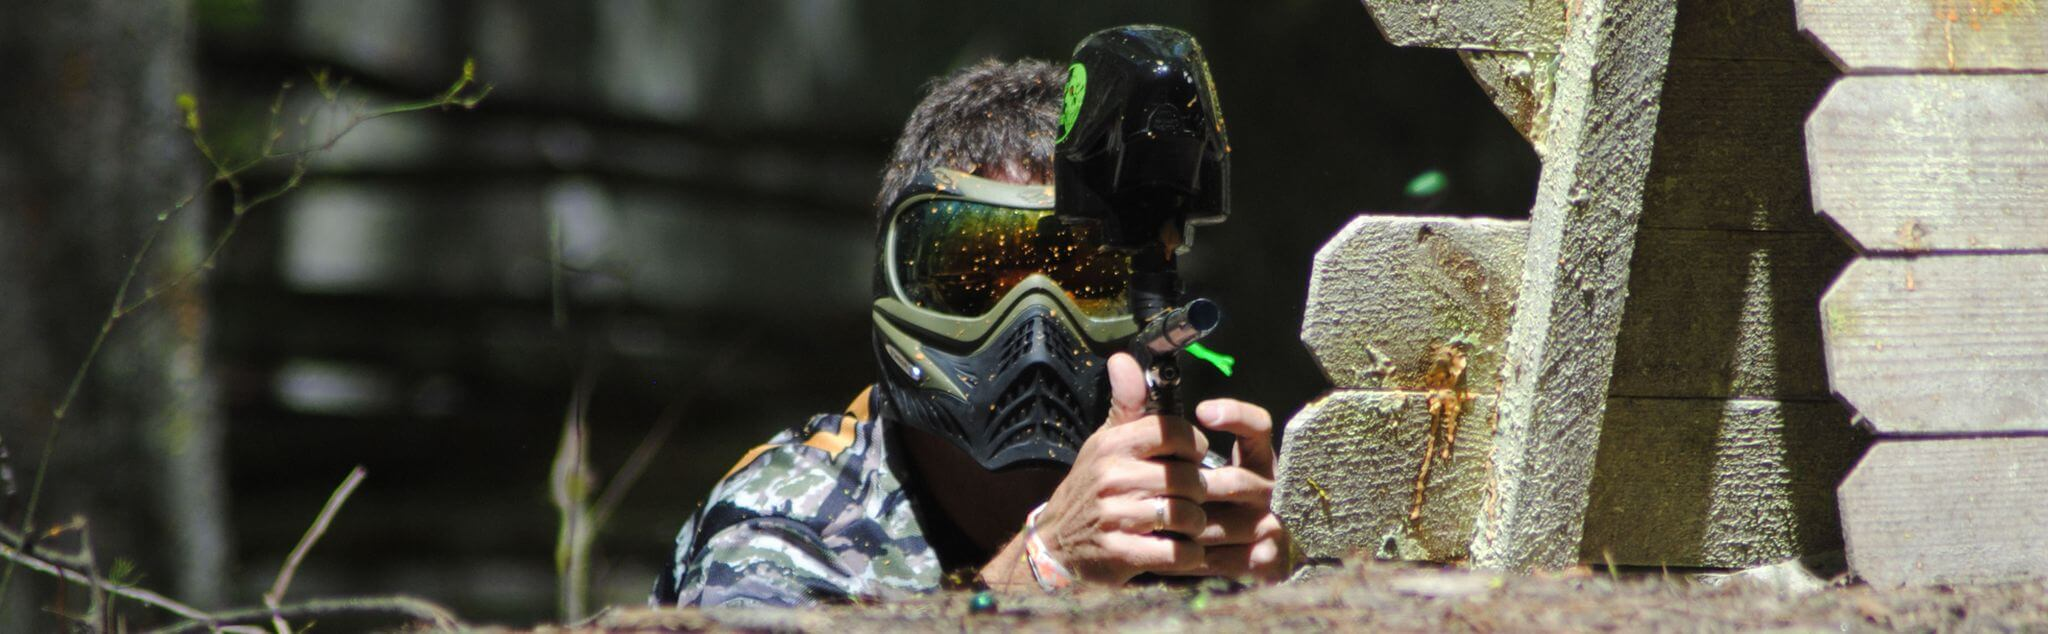 Paintball a Pordenone